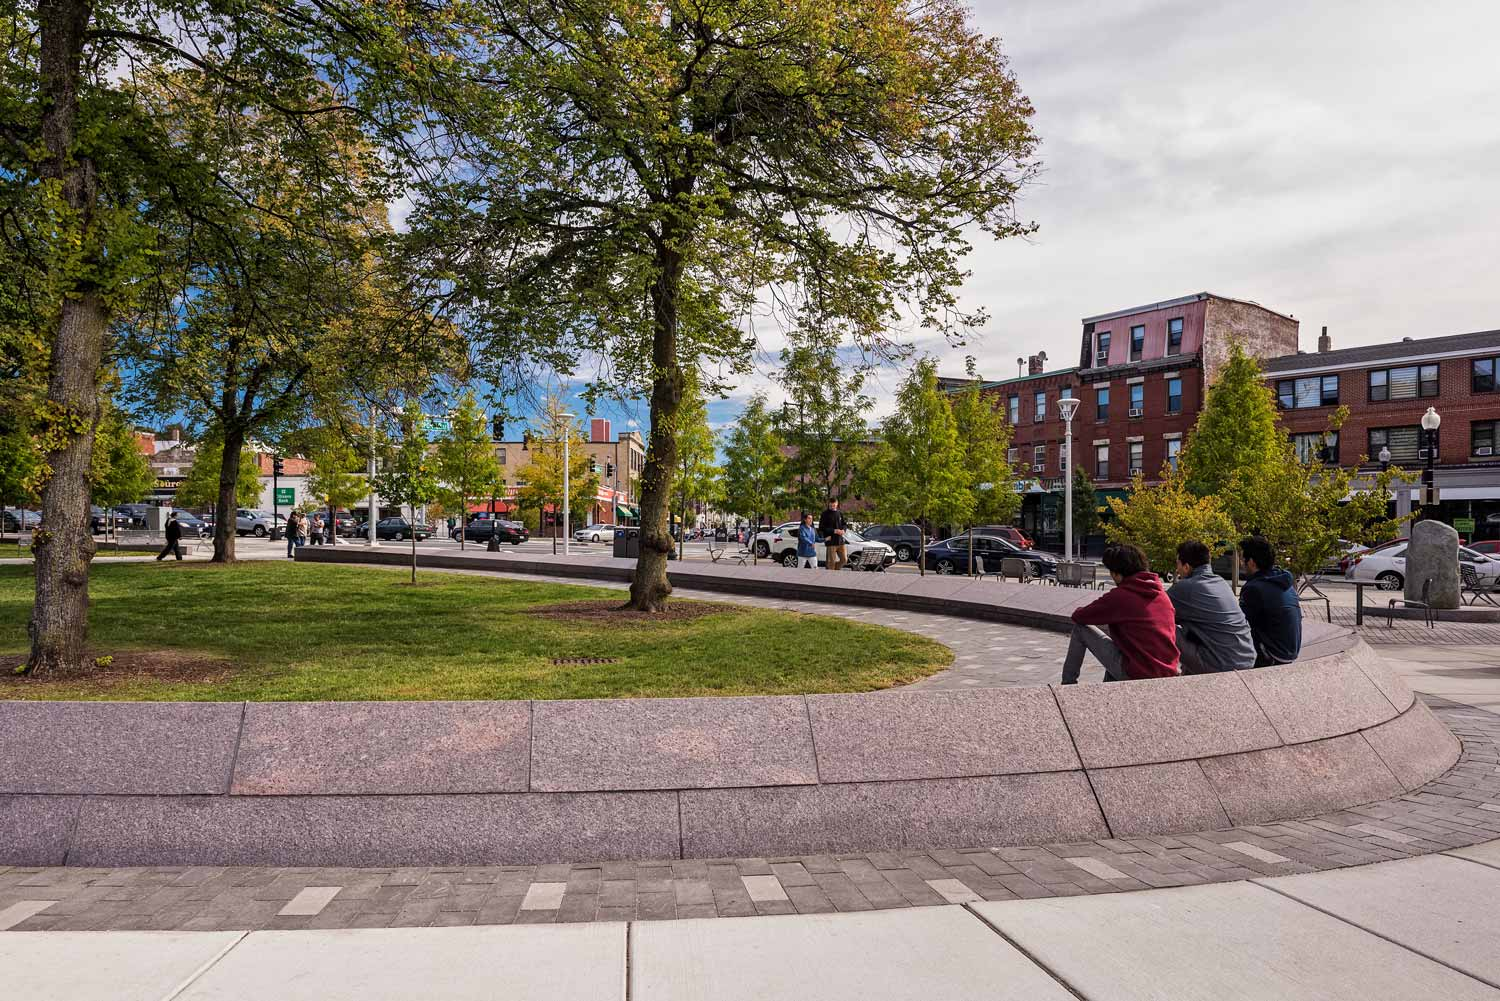 Central-Square-East-Boston_Historic-Park-Granit-Ellipse-Wall_Klopfer-Martin.jpg